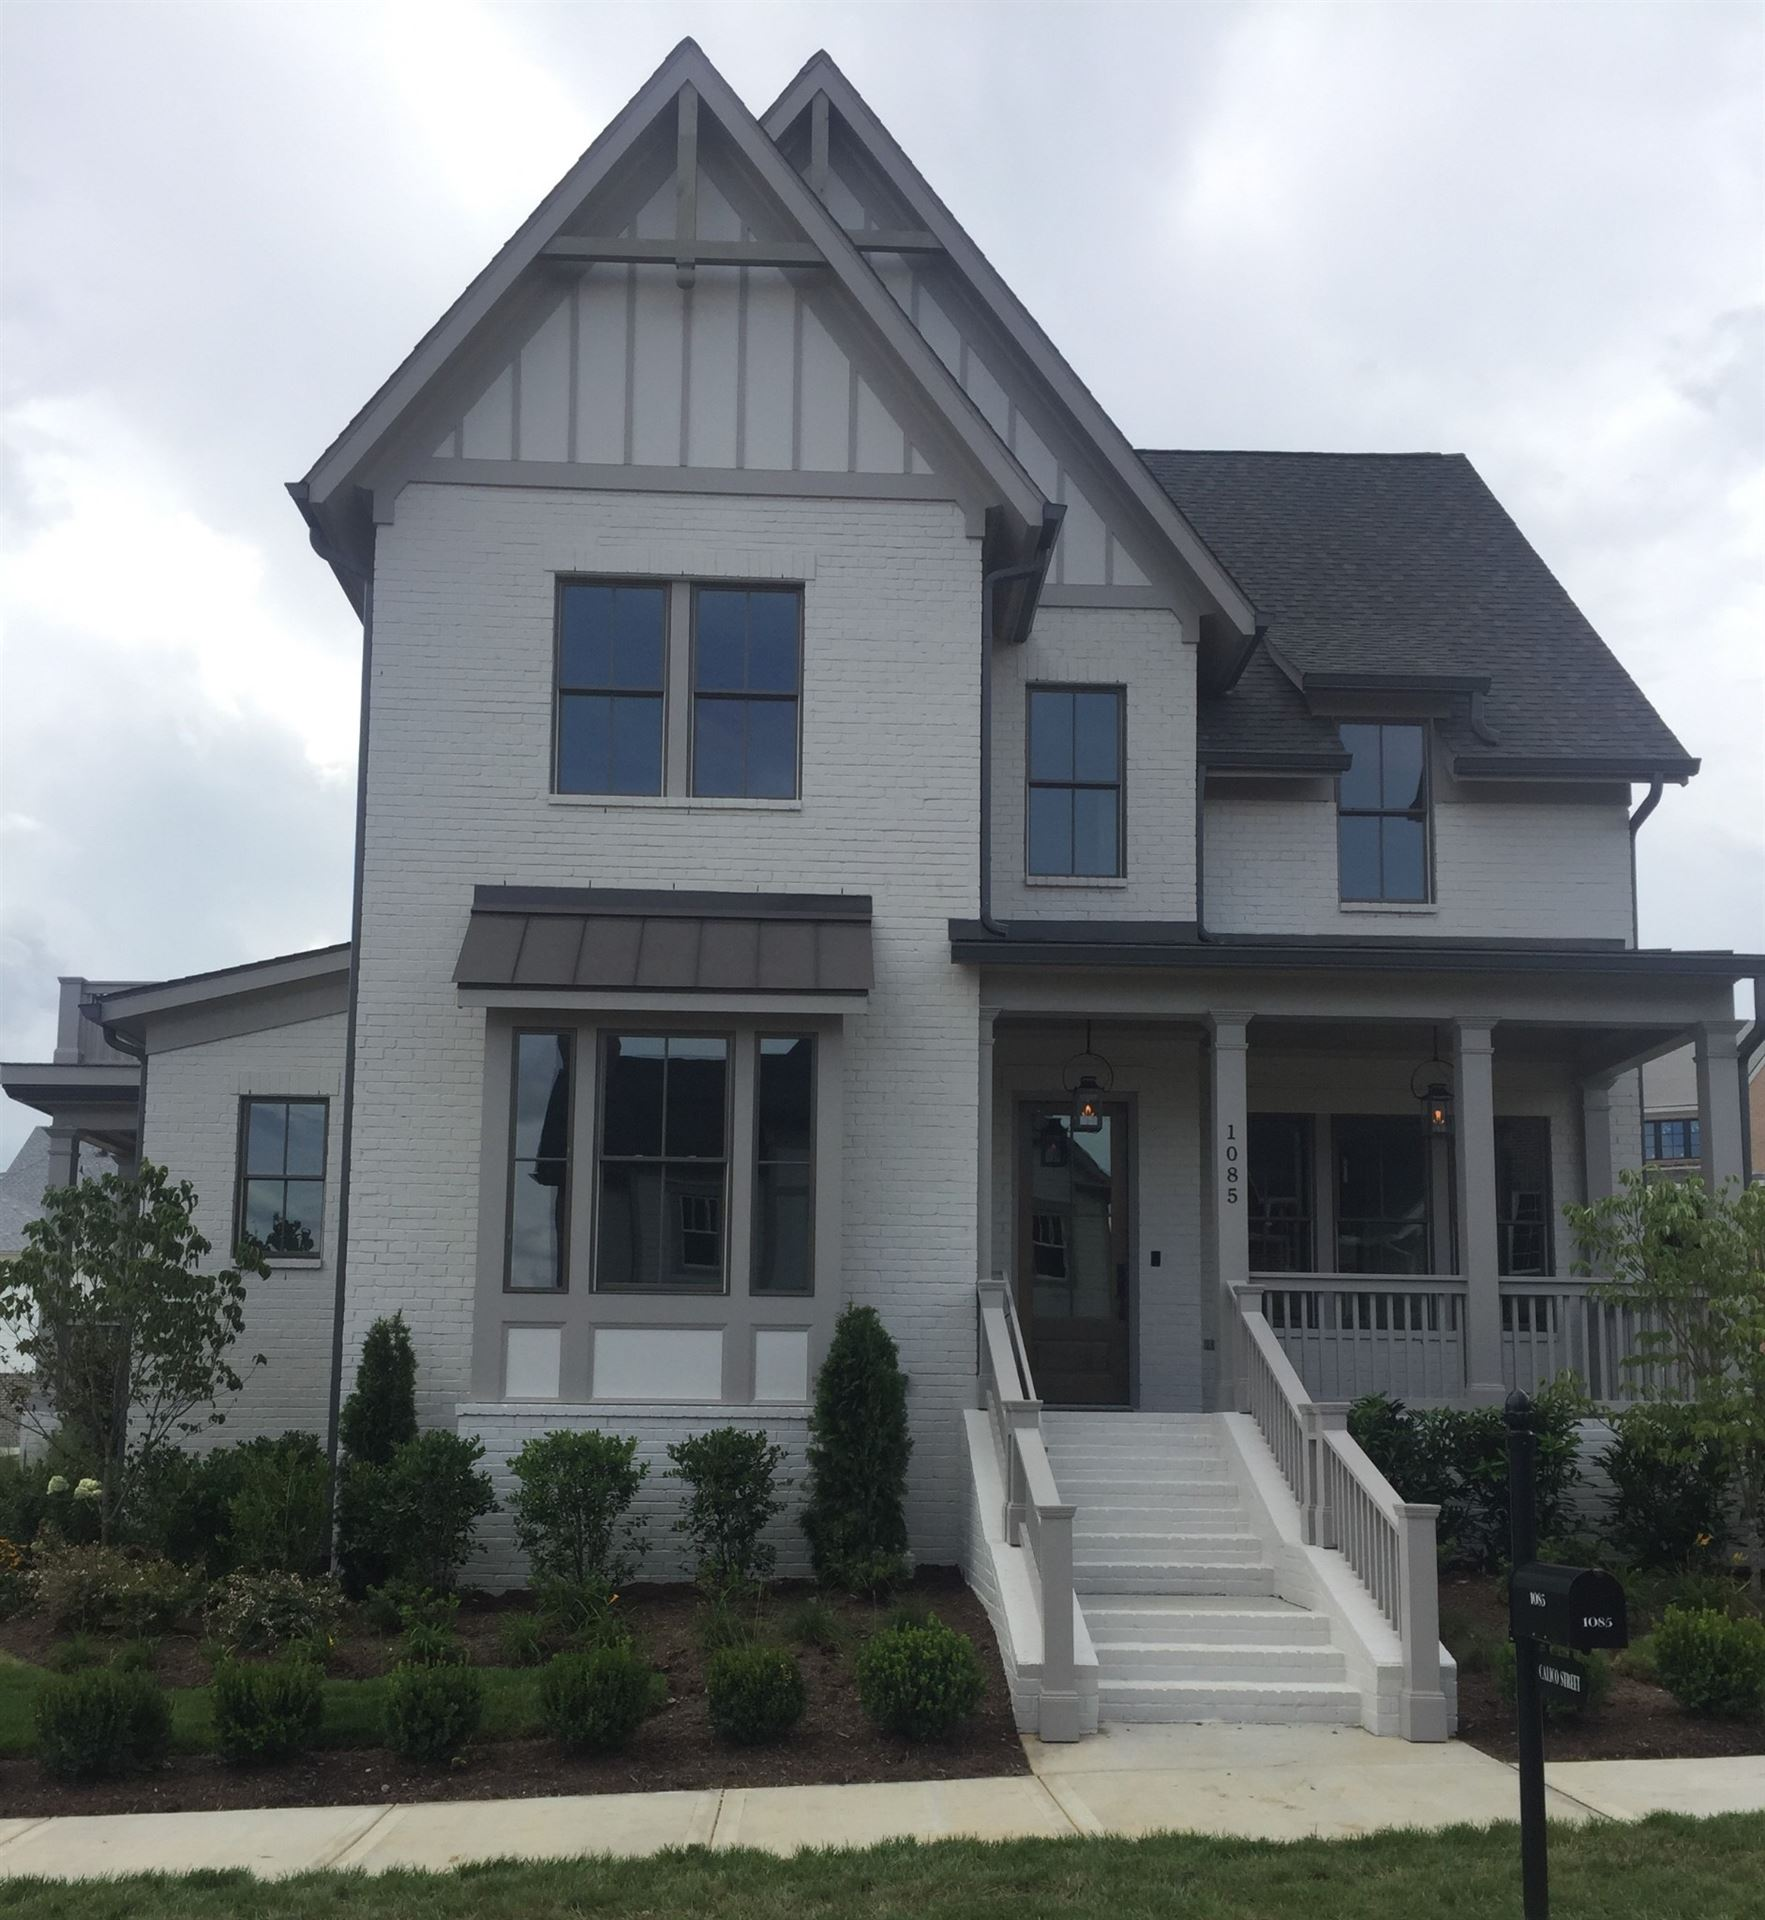 Photo of 1085 Calico Street, WH # 2118, Franklin, TN 37064 (MLS # 2244083)